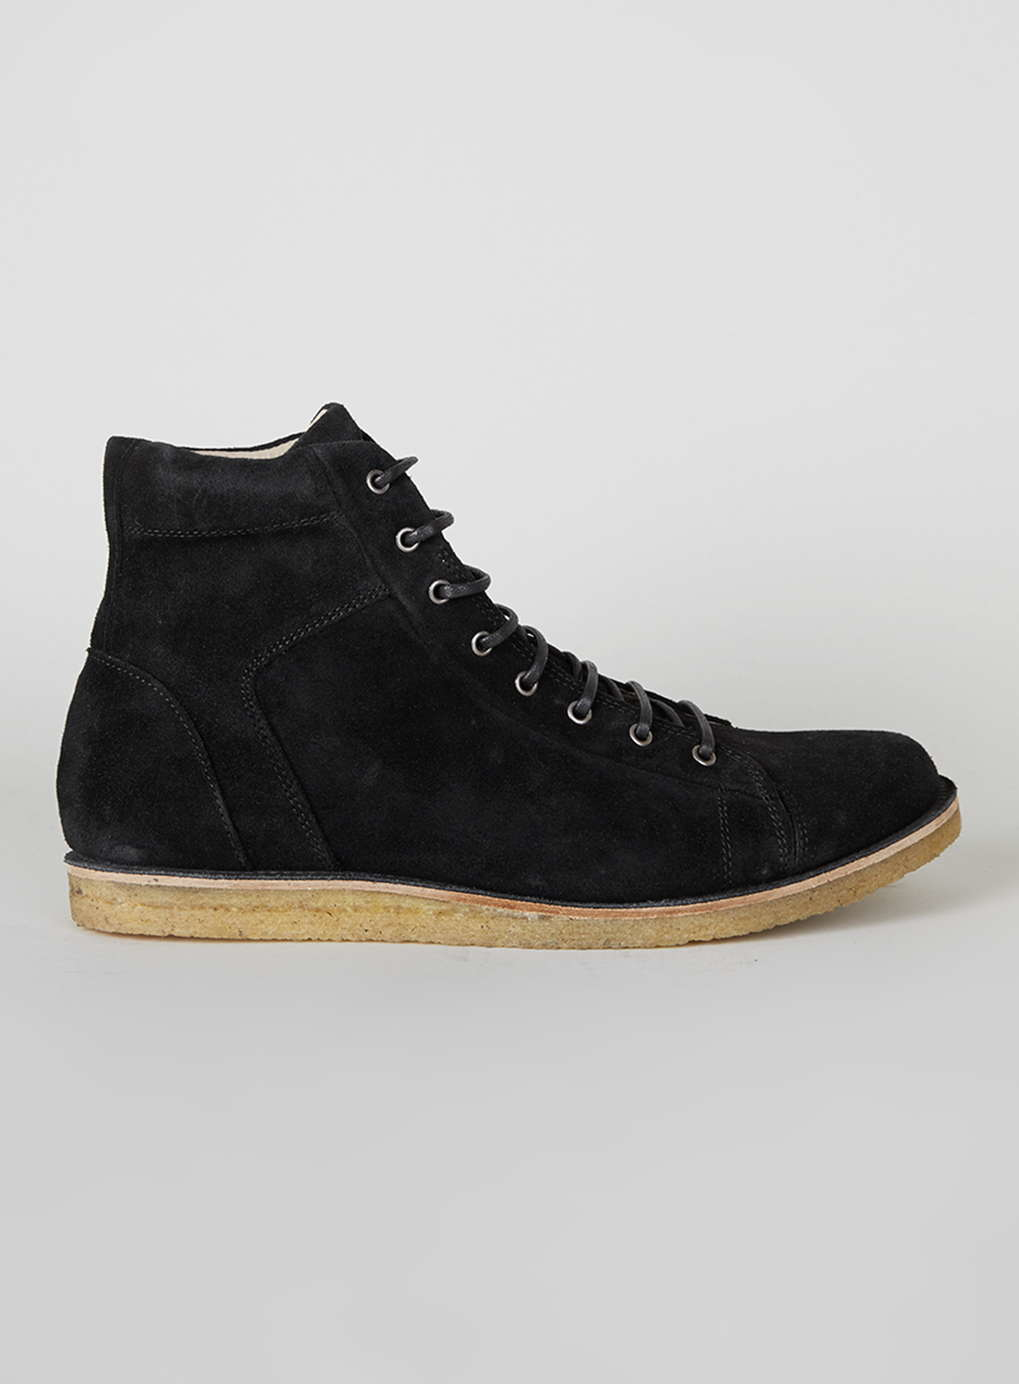 Shop black suede sneaker at Neiman Marcus, where you will find free shipping on the latest in fashion from top designers. More Details Puma Men's Classic Suede High-Top Weekend Sneakers, Black Details PUMA